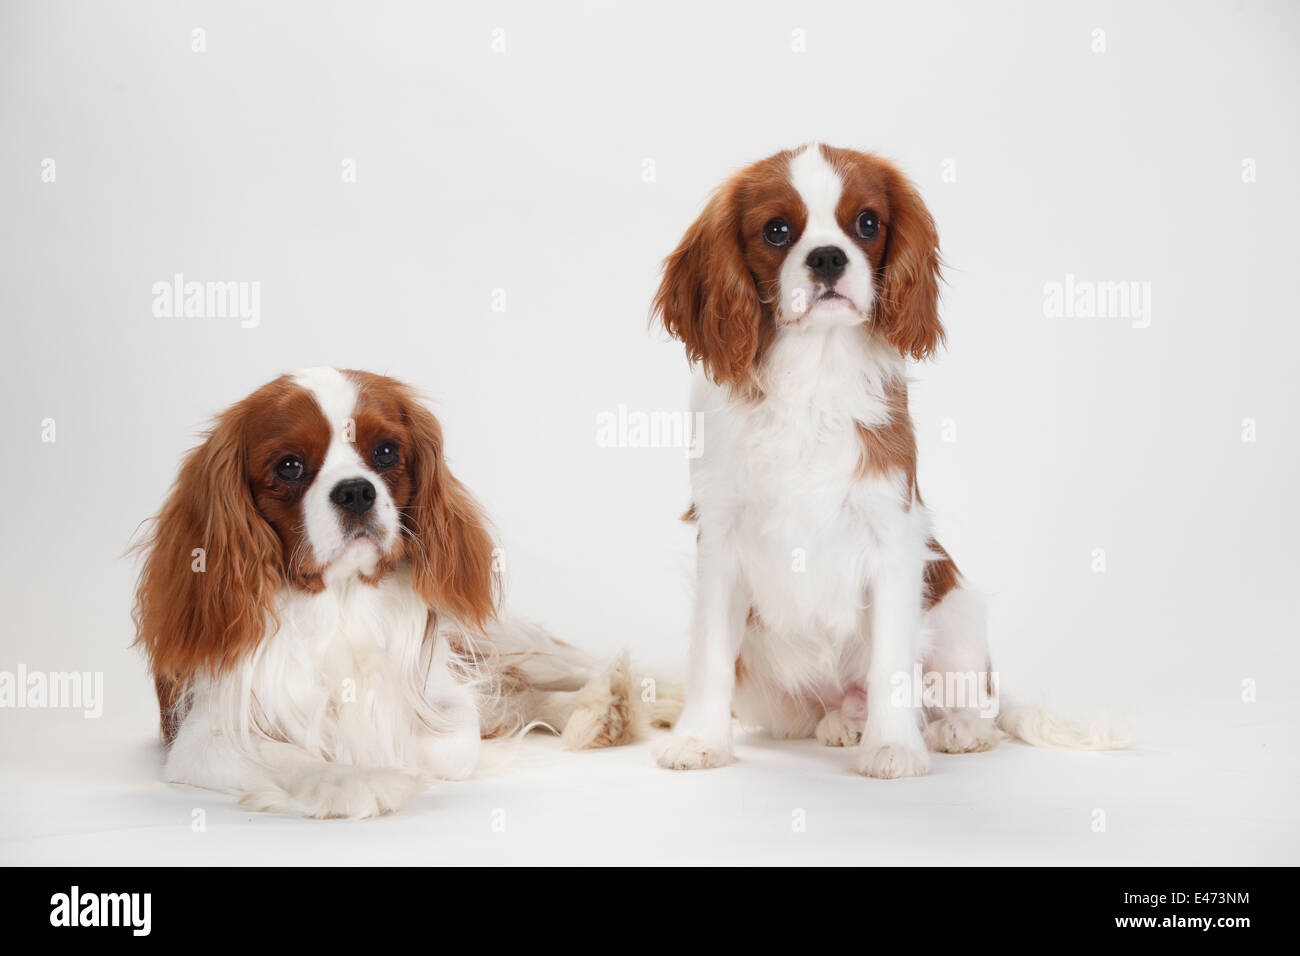 4 6 Year Male Cavalier King Charles Spaniel: Cavalier King Charles Spaniel, Blenheim, Males, 1 Year And